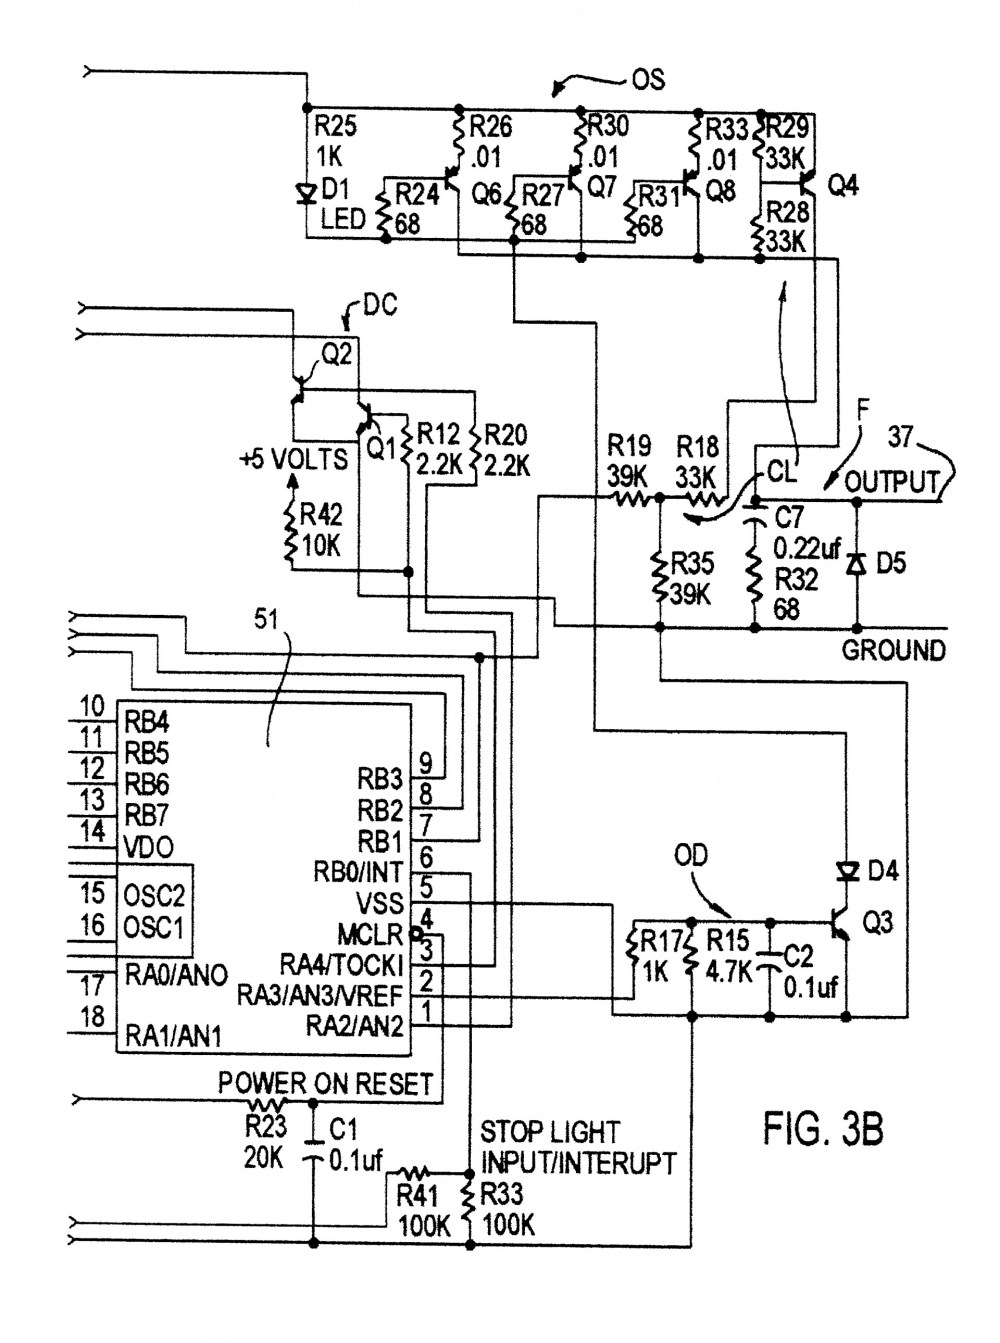 medium resolution of curtis controller wiring diagram potentiometer wiring diagram collection curtis controller wiring diagram fresh great potentiometer